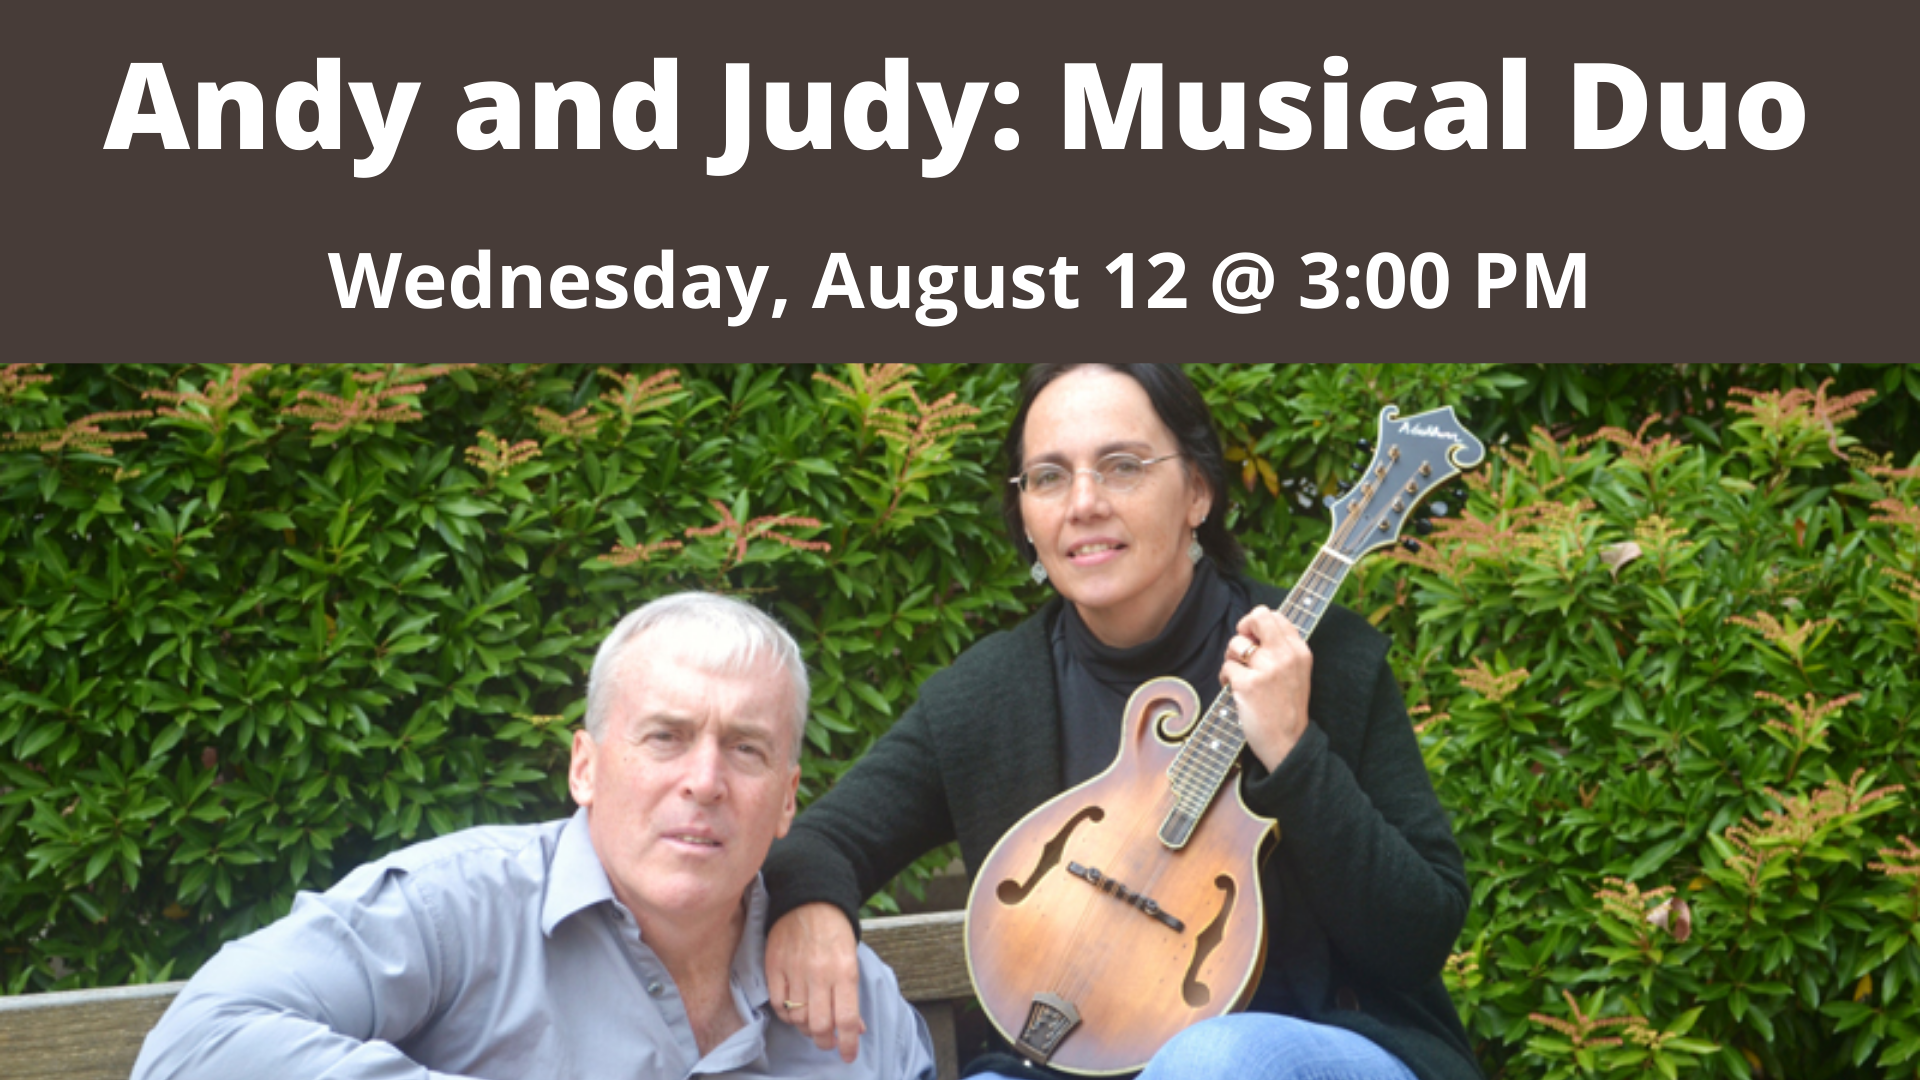 Andy and Judy: Musical Duo